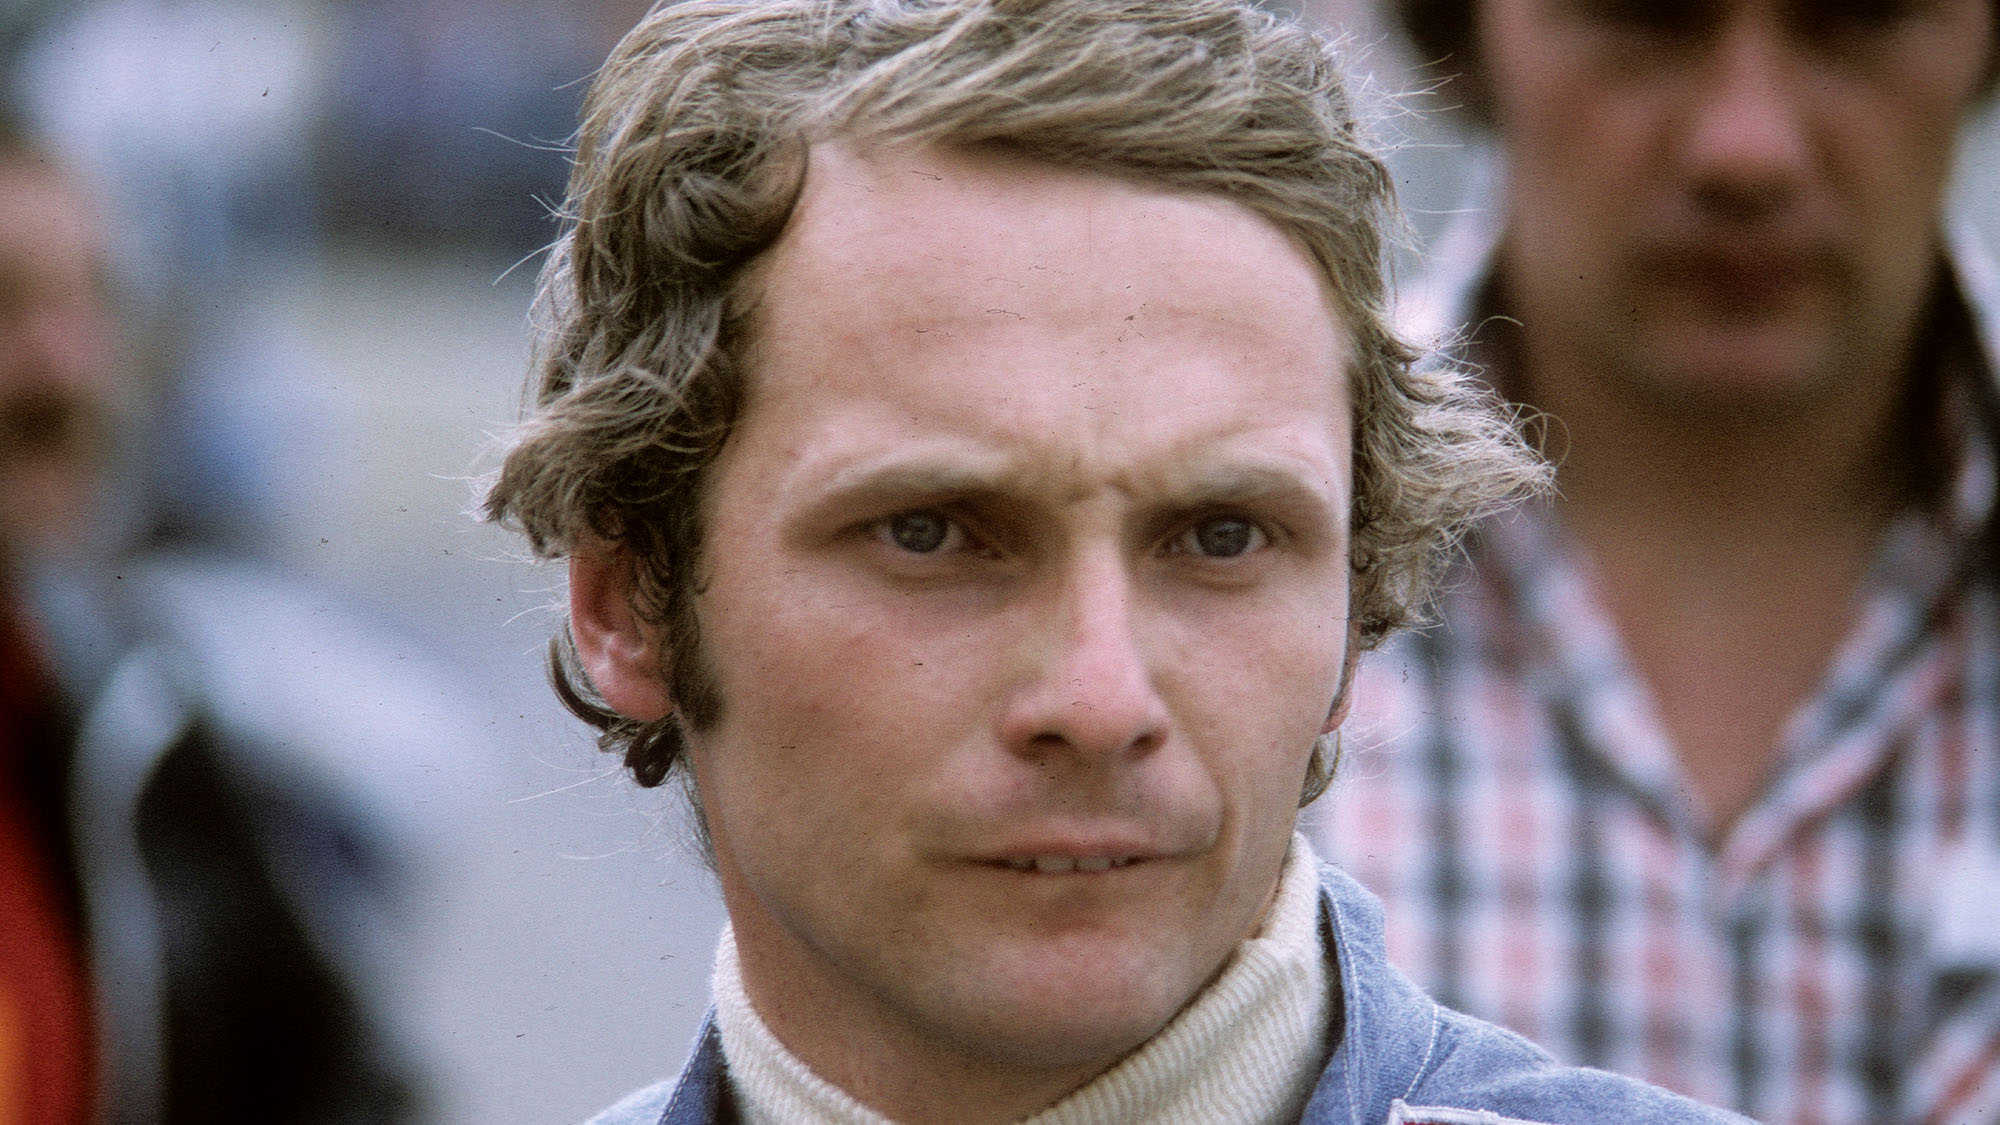 BRANDS HATCH, ENGLAND - JULY 01: Austrian F1 racing driver Niki Lauda at Brands Hatch on July 01, 1974 in Brands Hatch England. (Photo by Anwar Hussein/Getty Images)